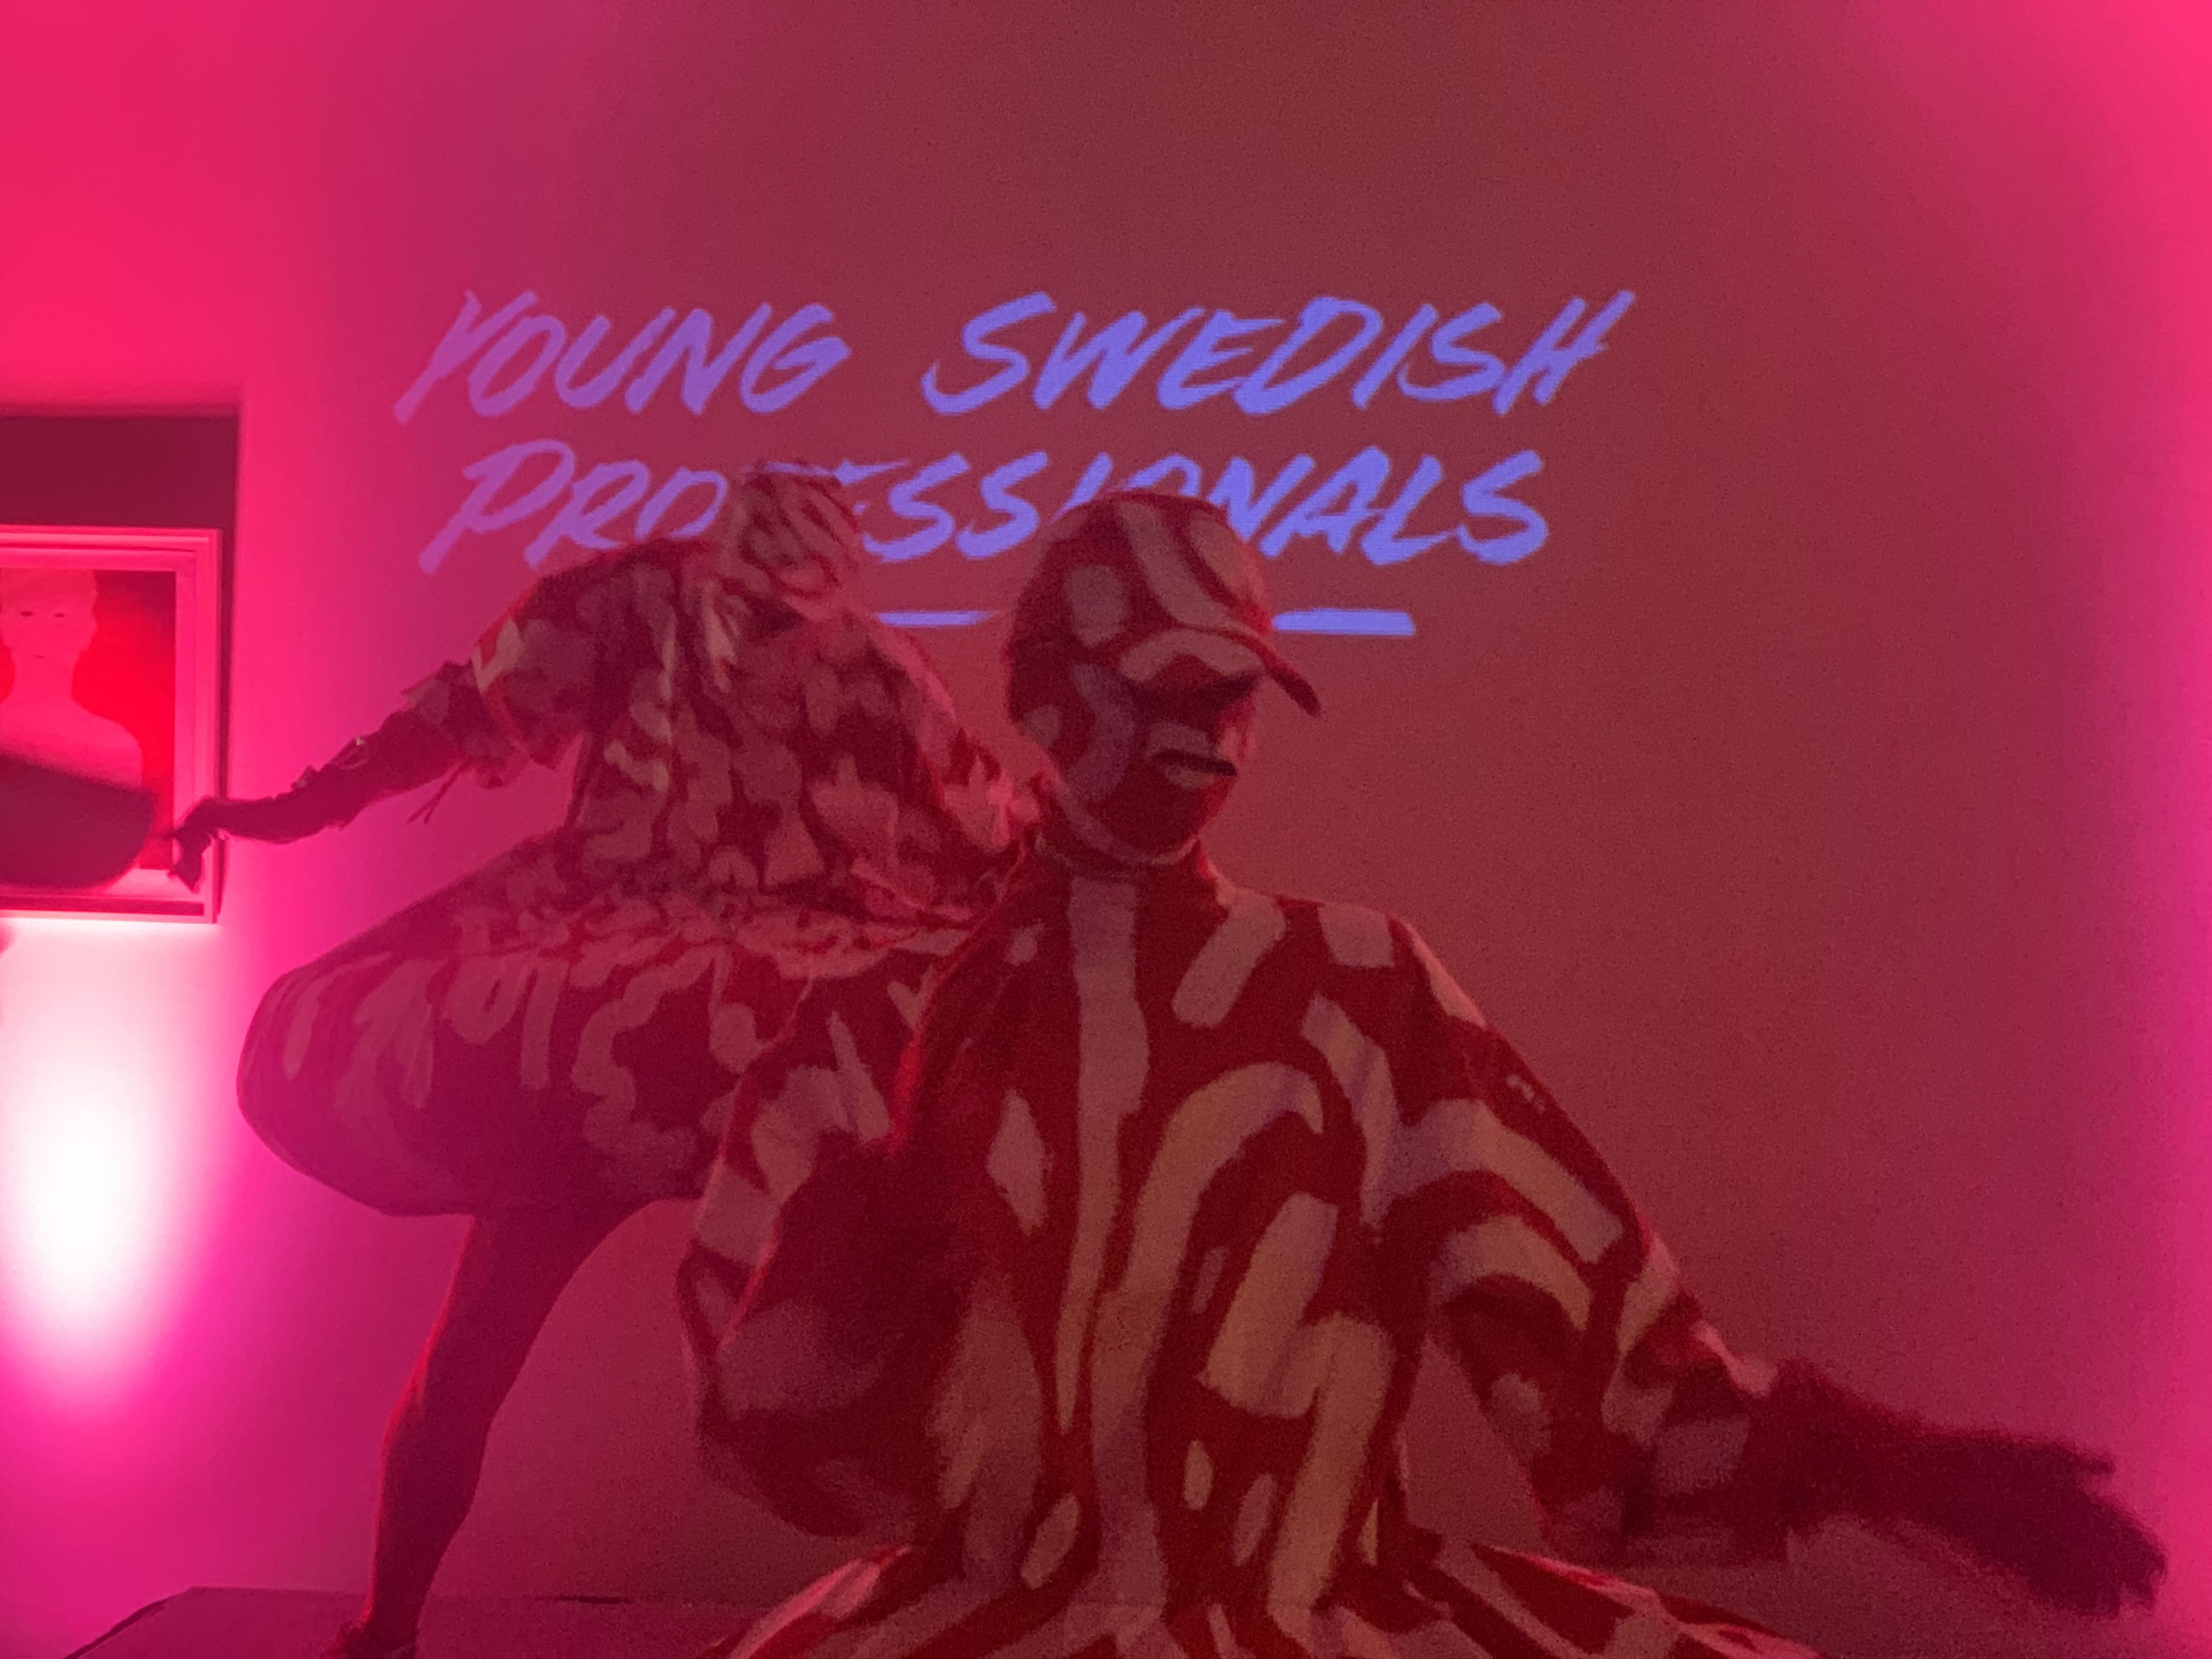 Event Report: Young Swedish Professionals Launch Event